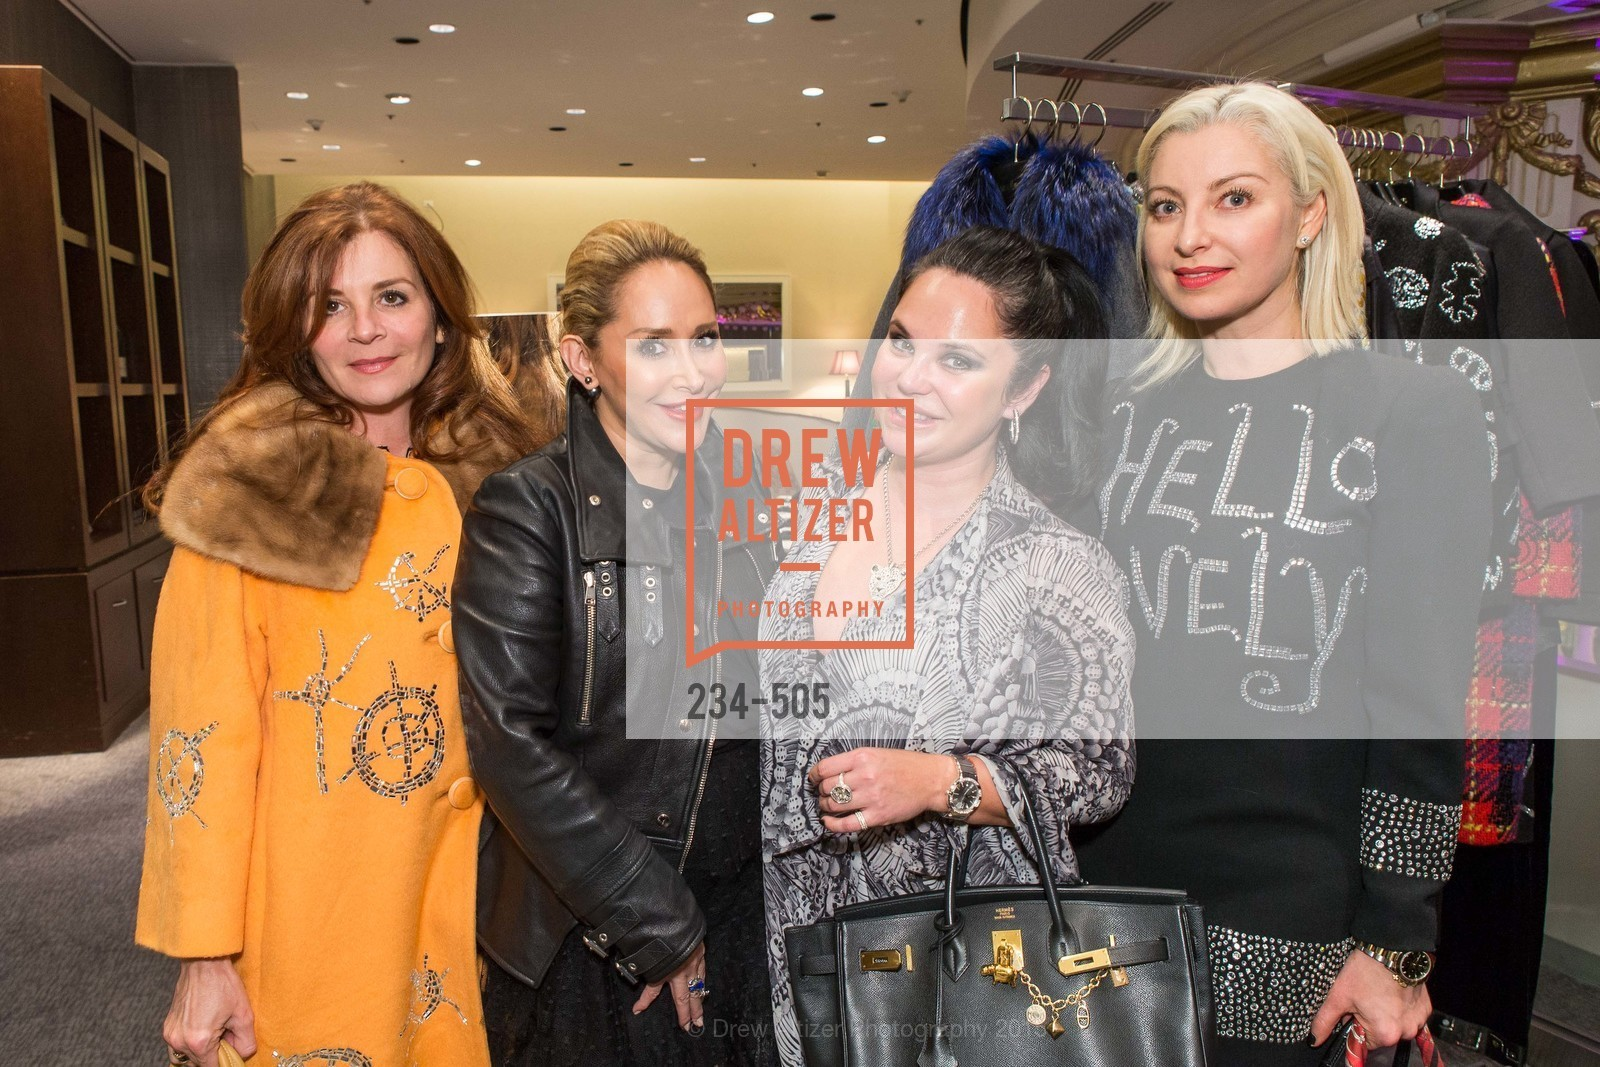 Farah Makras, Brenda Zarate, Rada Katz, Sonya Molodetskaya, Libertine Cocktail Party at Neiman Marcus, Neiman Marcus, November 10th, 2015,Drew Altizer, Drew Altizer Photography, full-service agency, private events, San Francisco photographer, photographer california